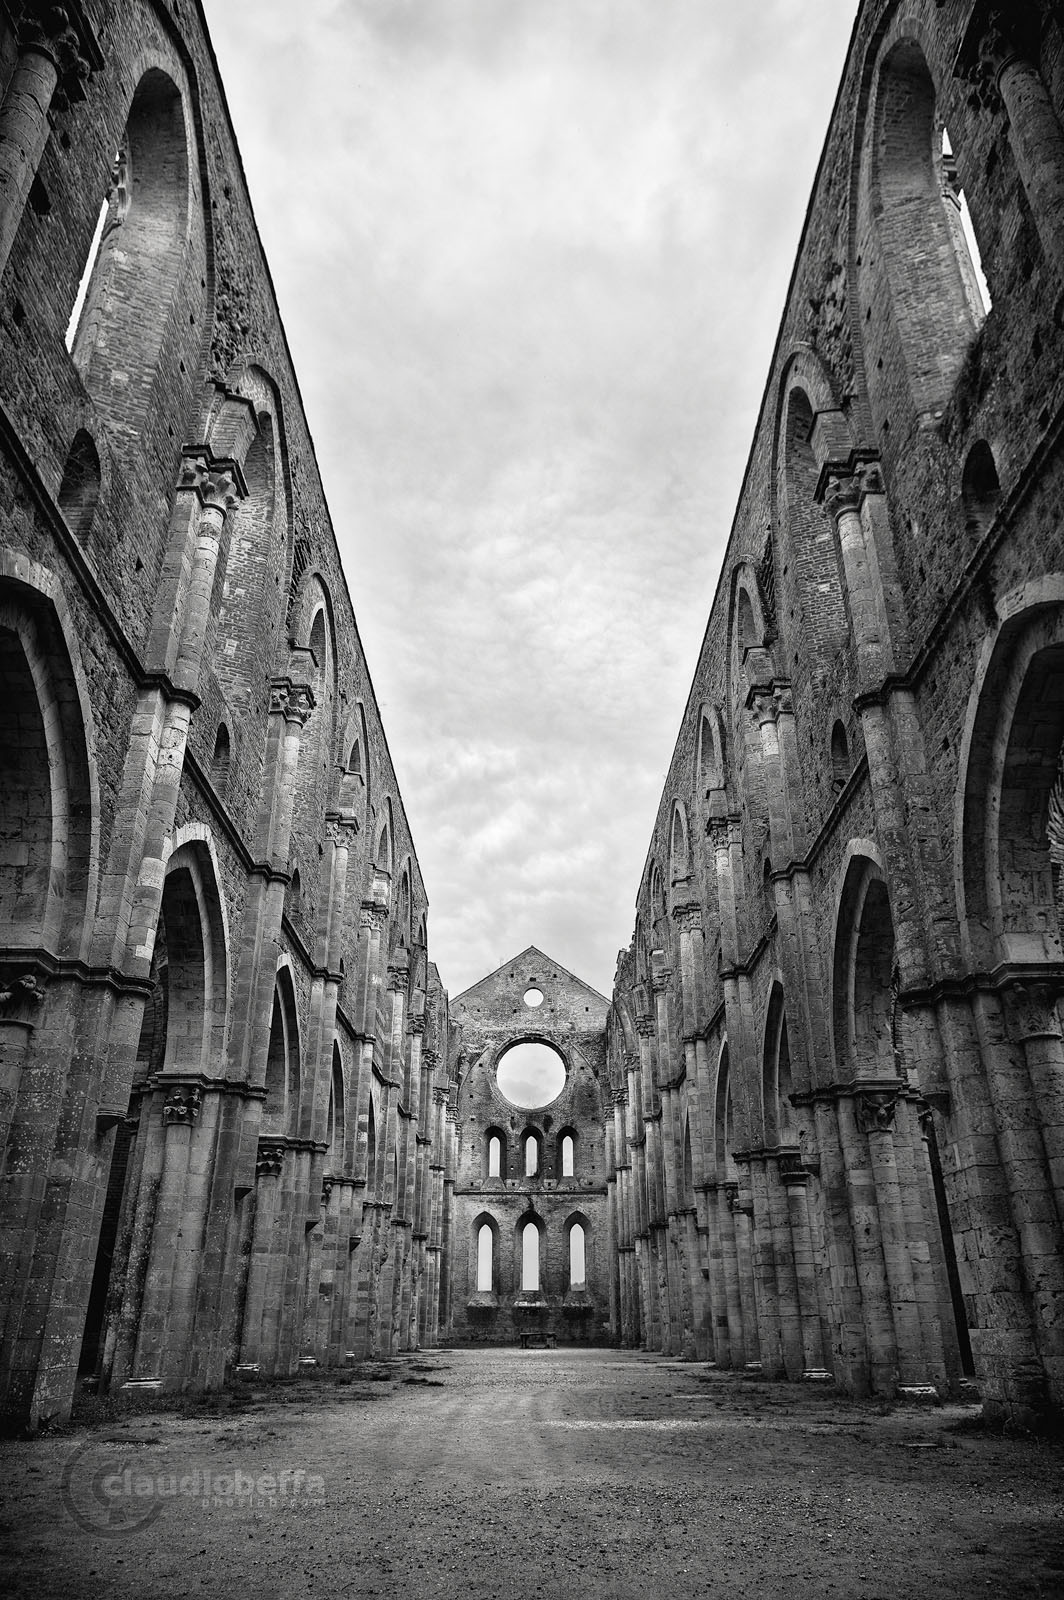 San Galgano, Abbey, Nave, Windows, Layers, Light, Shadows, Capitals, Arches, Ruin, Tuscany, Italy, Nature, History, Architecture, Symmetry, abbey of san galgano